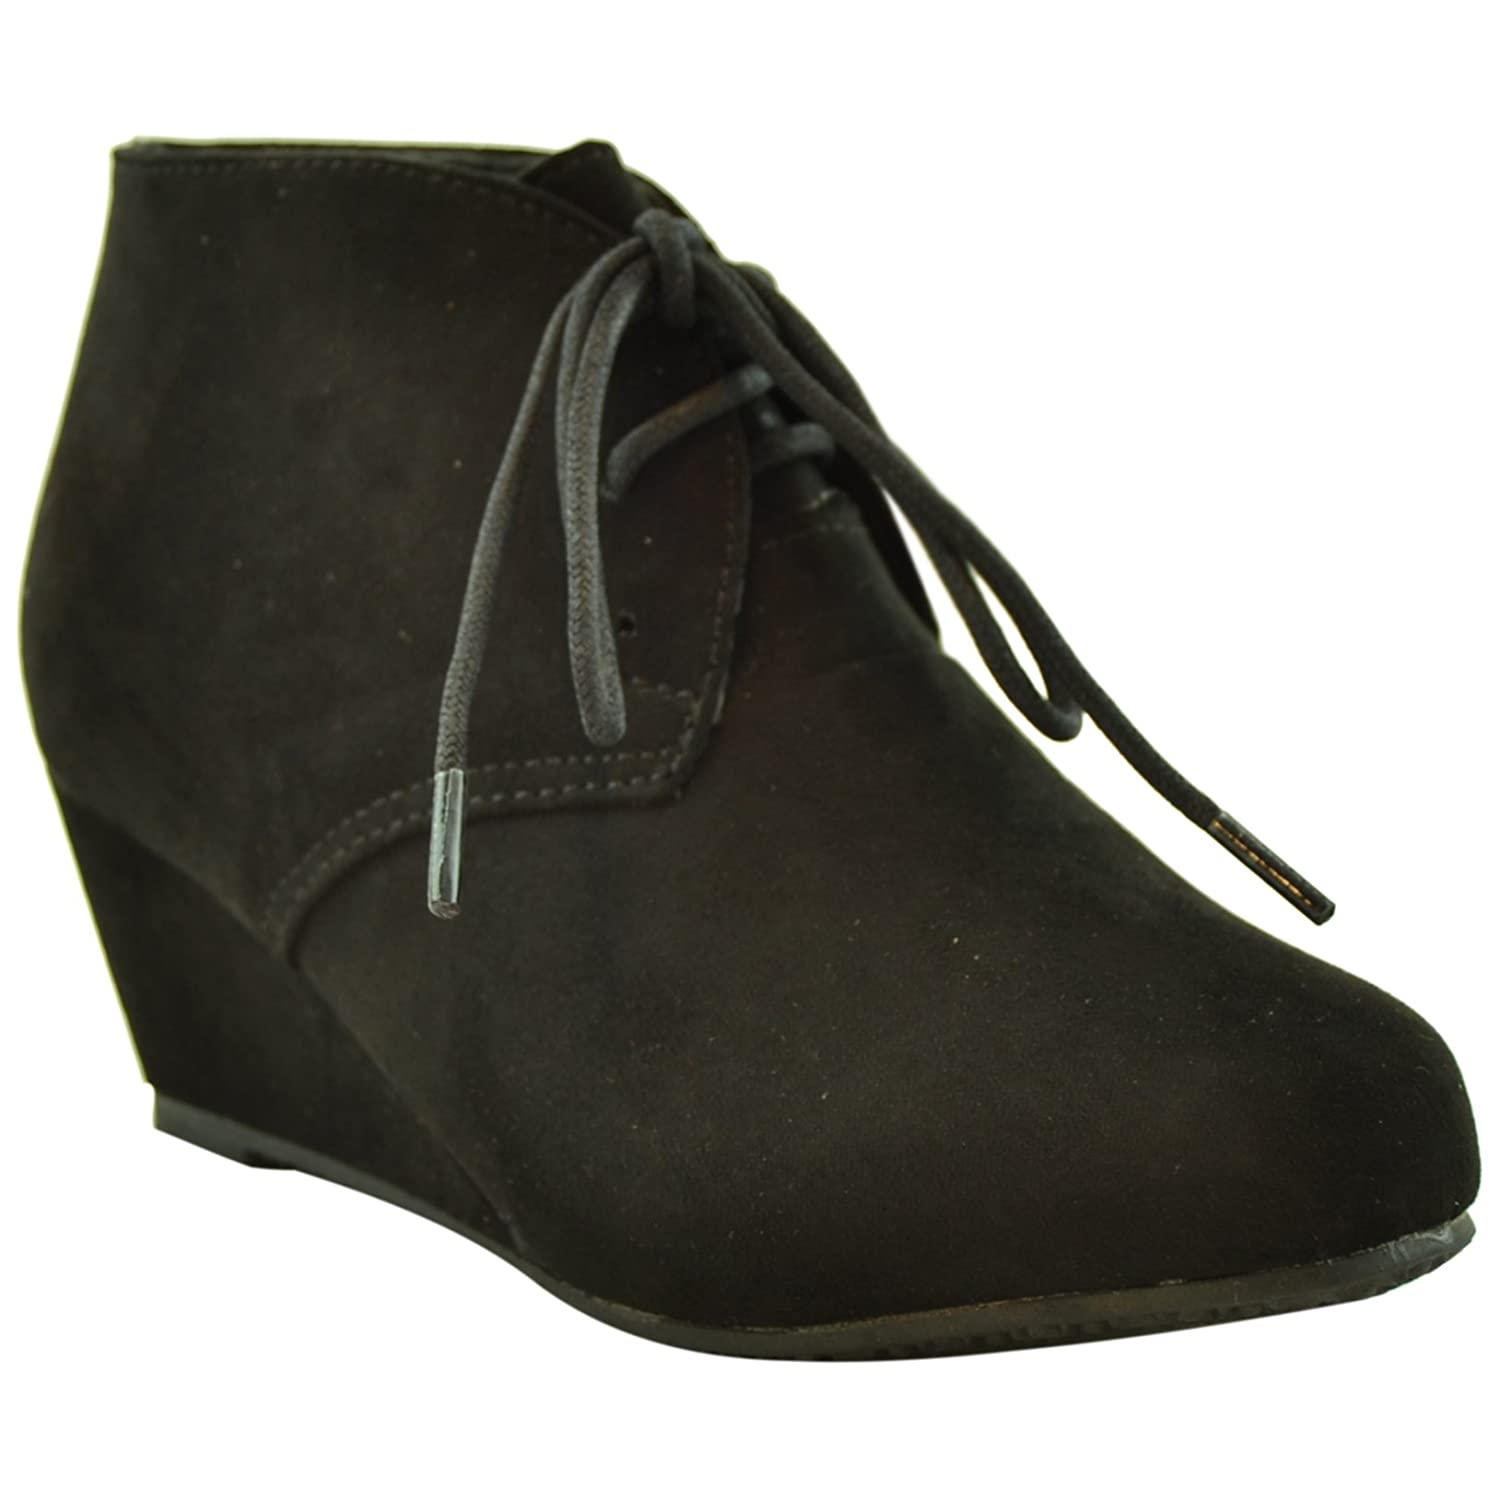 44225514fbce Kids ankle boots faux suede low heel casual wedges black boots jpg  1500x1500 Black low wedges